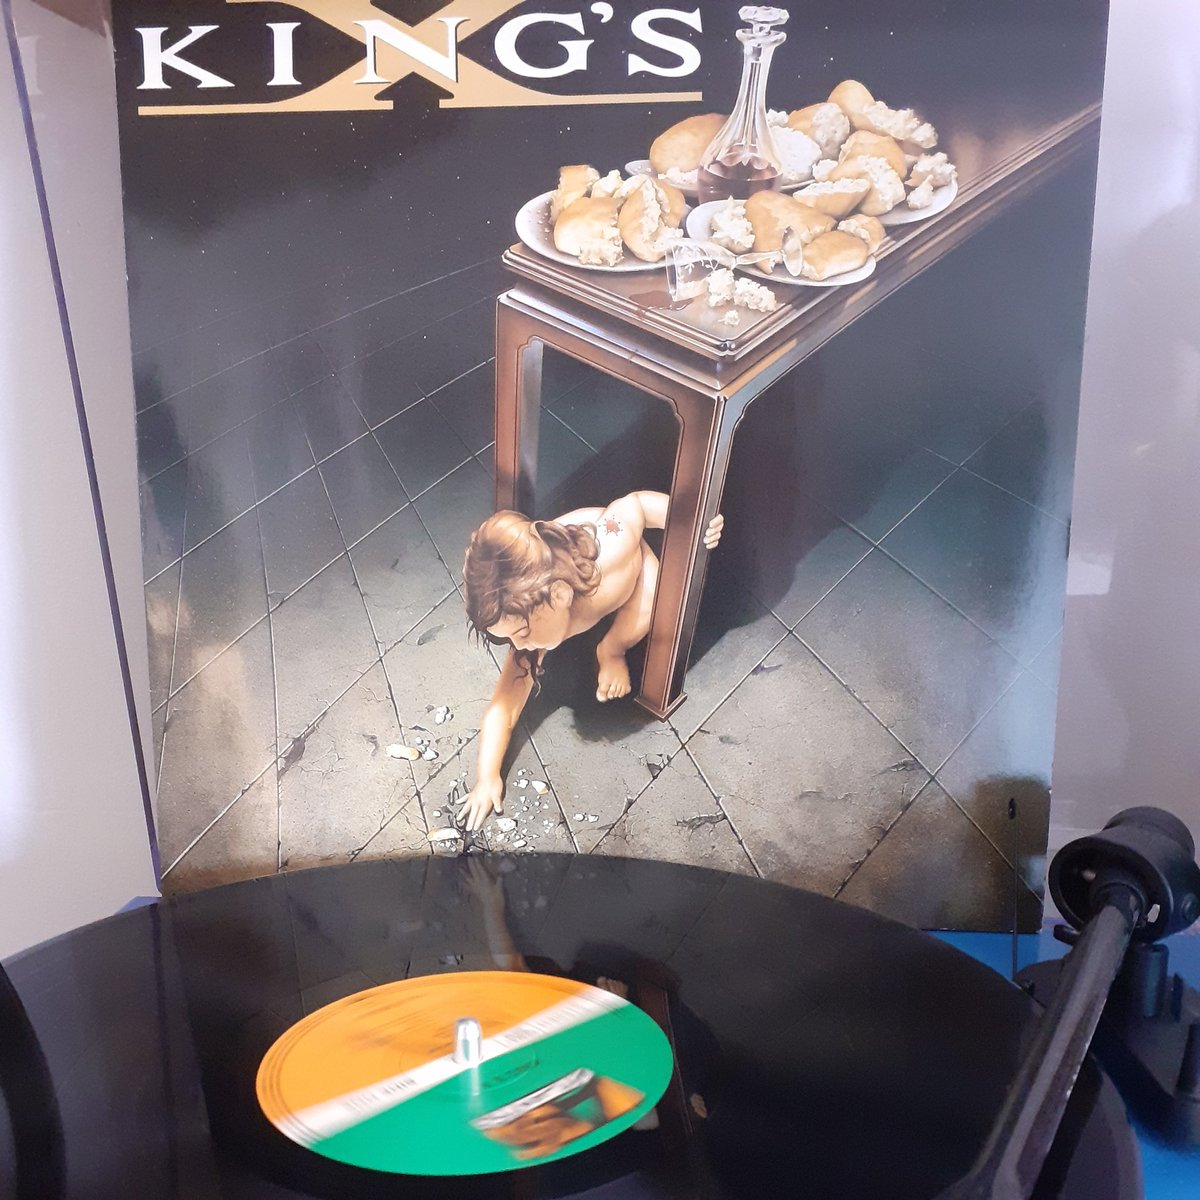 #atozofmetalandrockvinyl #nowplaying @kingsx #kingsx from '92 on #atlanticrecords a great album from a band who hit their 40th year with a uk tour. Great stuff. A wonderful band with a rich discography #vinyl #rockvinyl #vinylcollector #metal #metalvinyl #trio #progressiverock #pic.twitter.com/iak9DqXTTZ